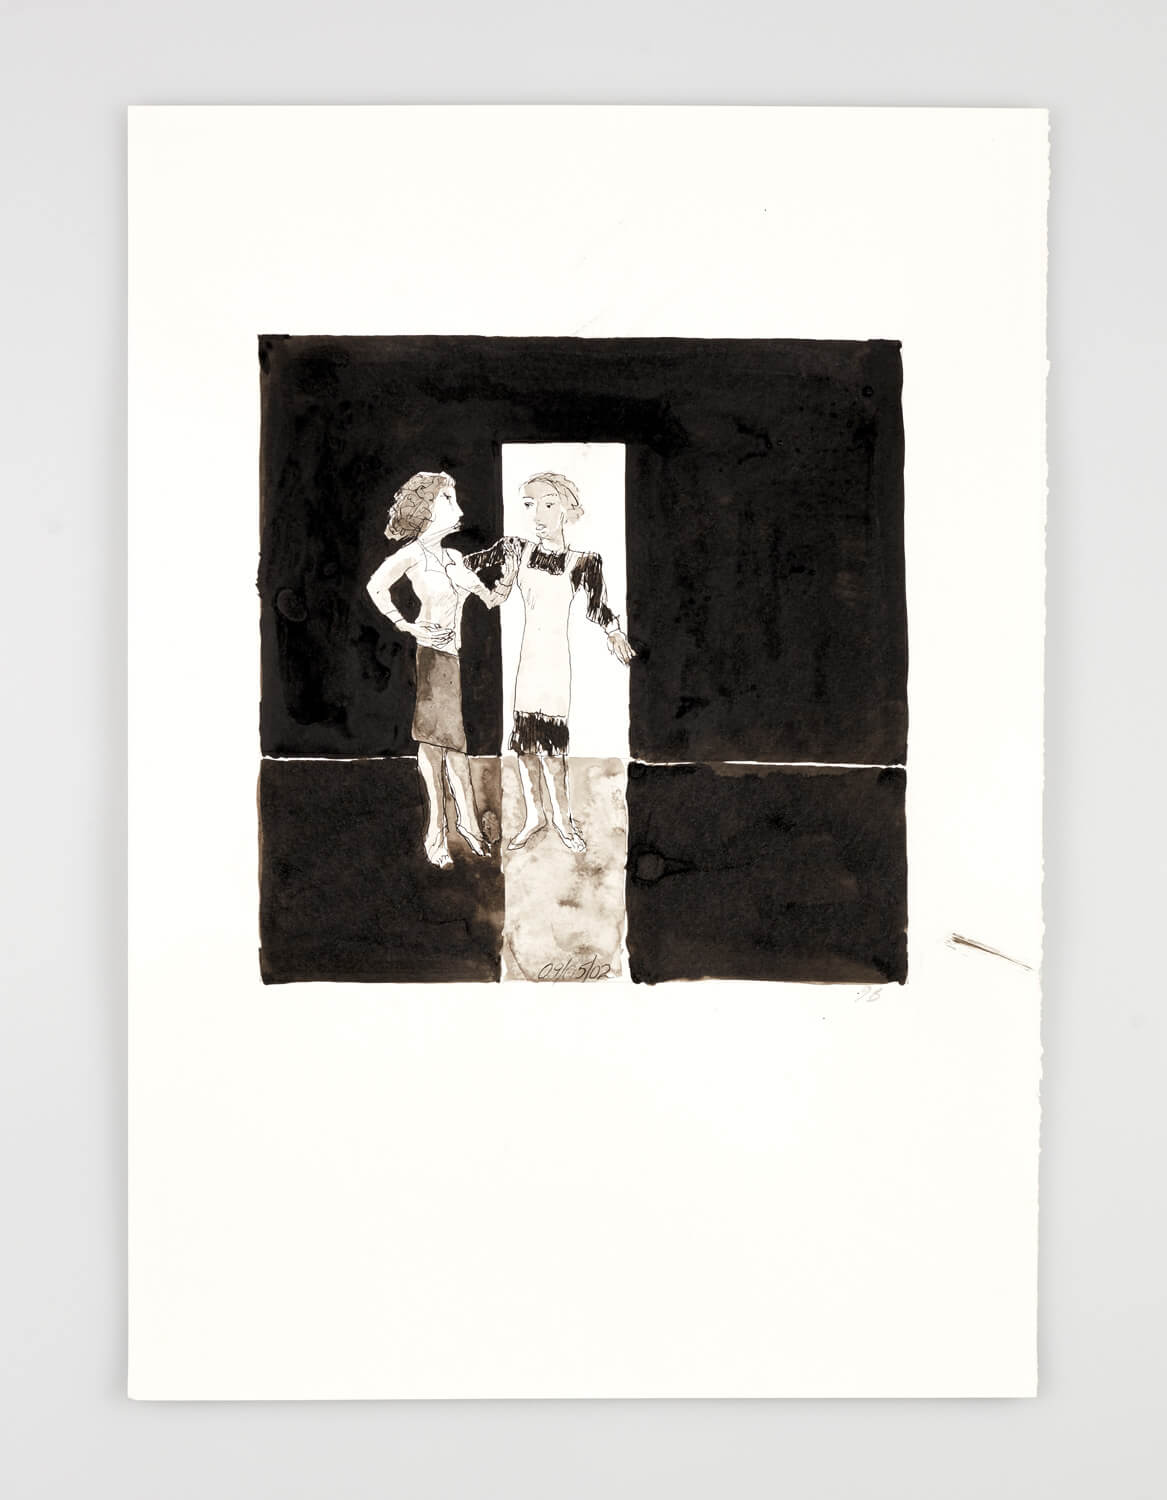 JB068 - Two Women - Being dressed - 2002 - 50 x 35 cm - Indian ink and wash on paper